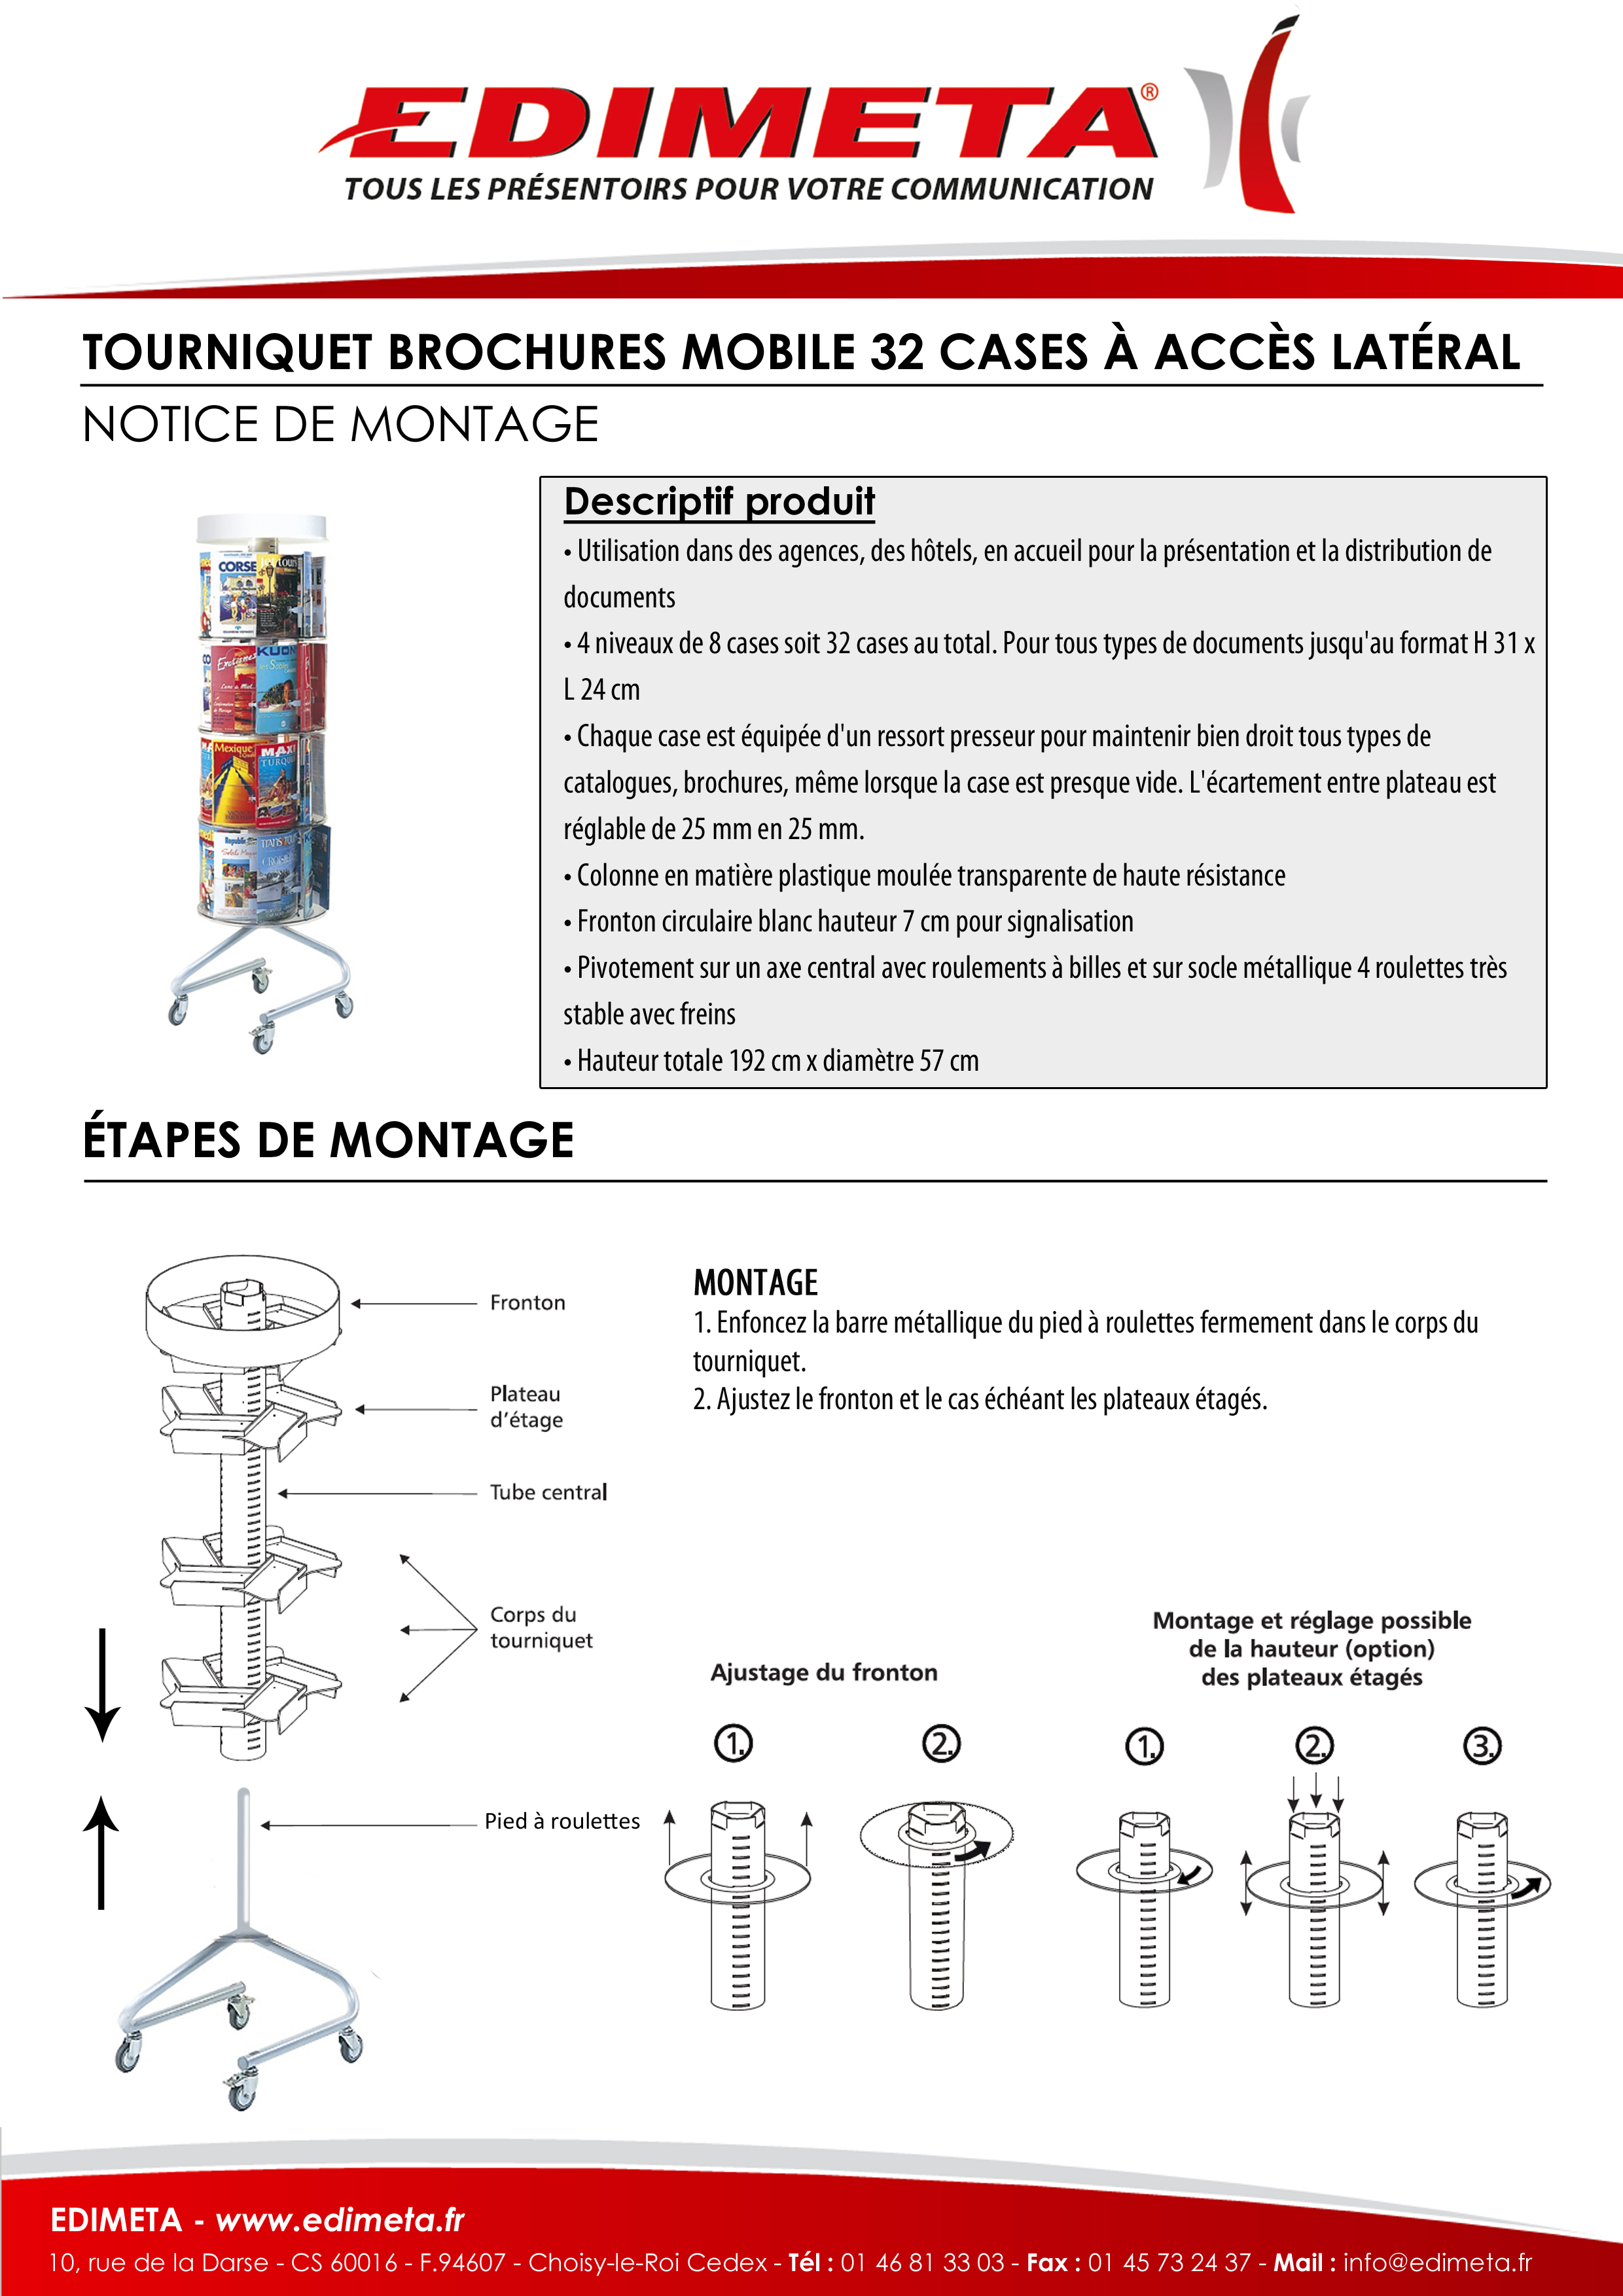 NOTICE DE MONTAGE : TOURNIQUET BROCHURES MOBILE 32 CASES À ACCÈS LATÉRAL